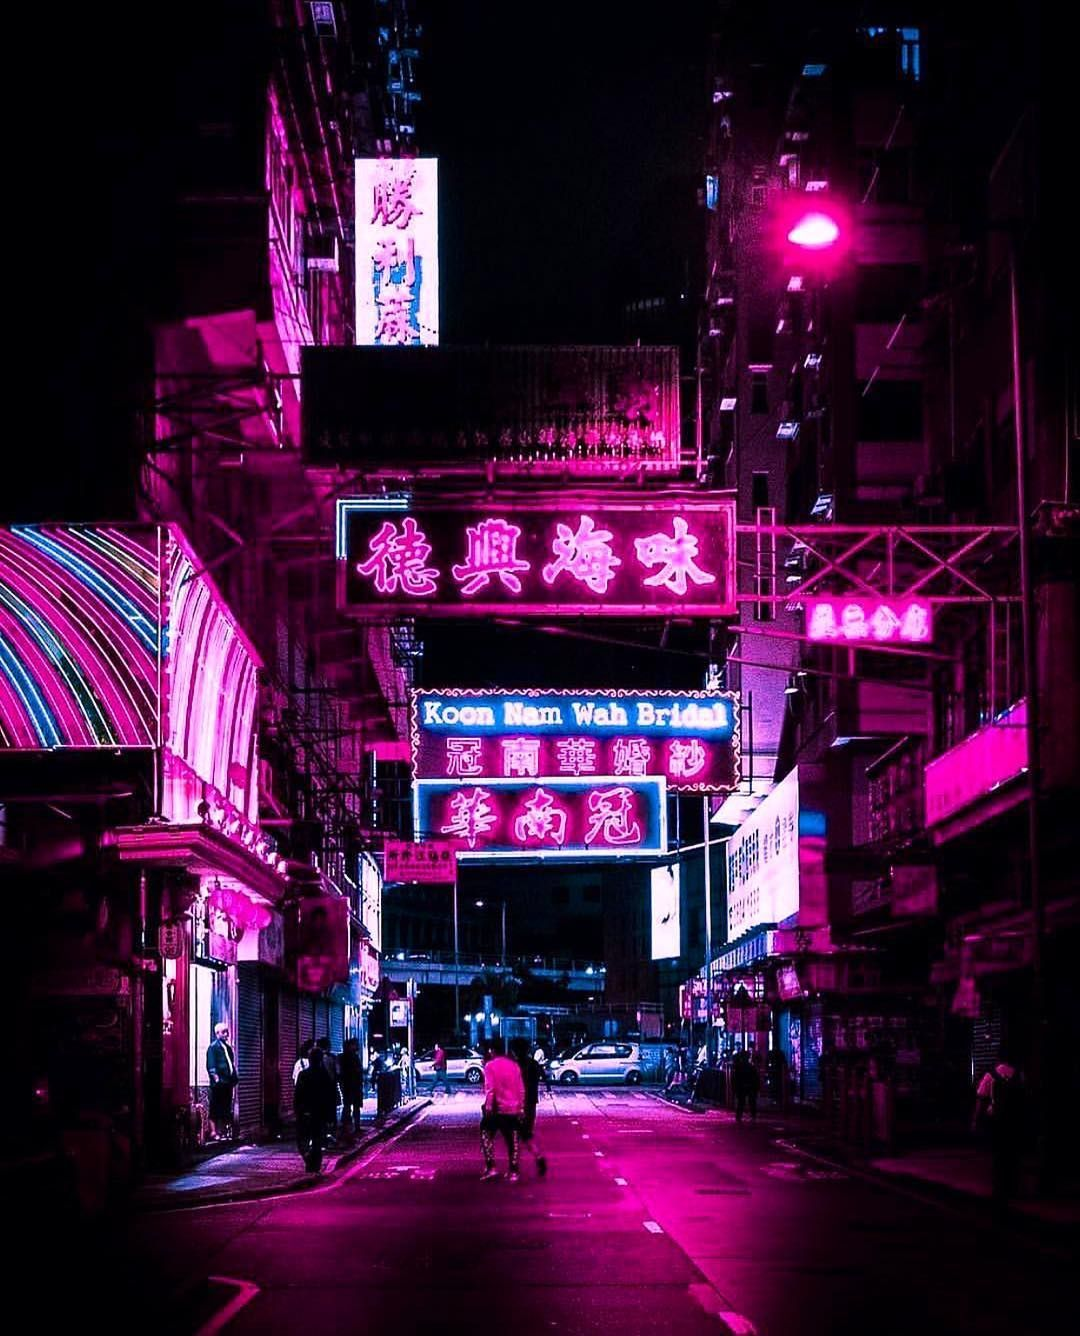 Japanese Streets Neon Pink Purple Lights Japanese Lights Purple Streets Dark Purple Aesthetic Neon Aesthetic Pink Aesthetic